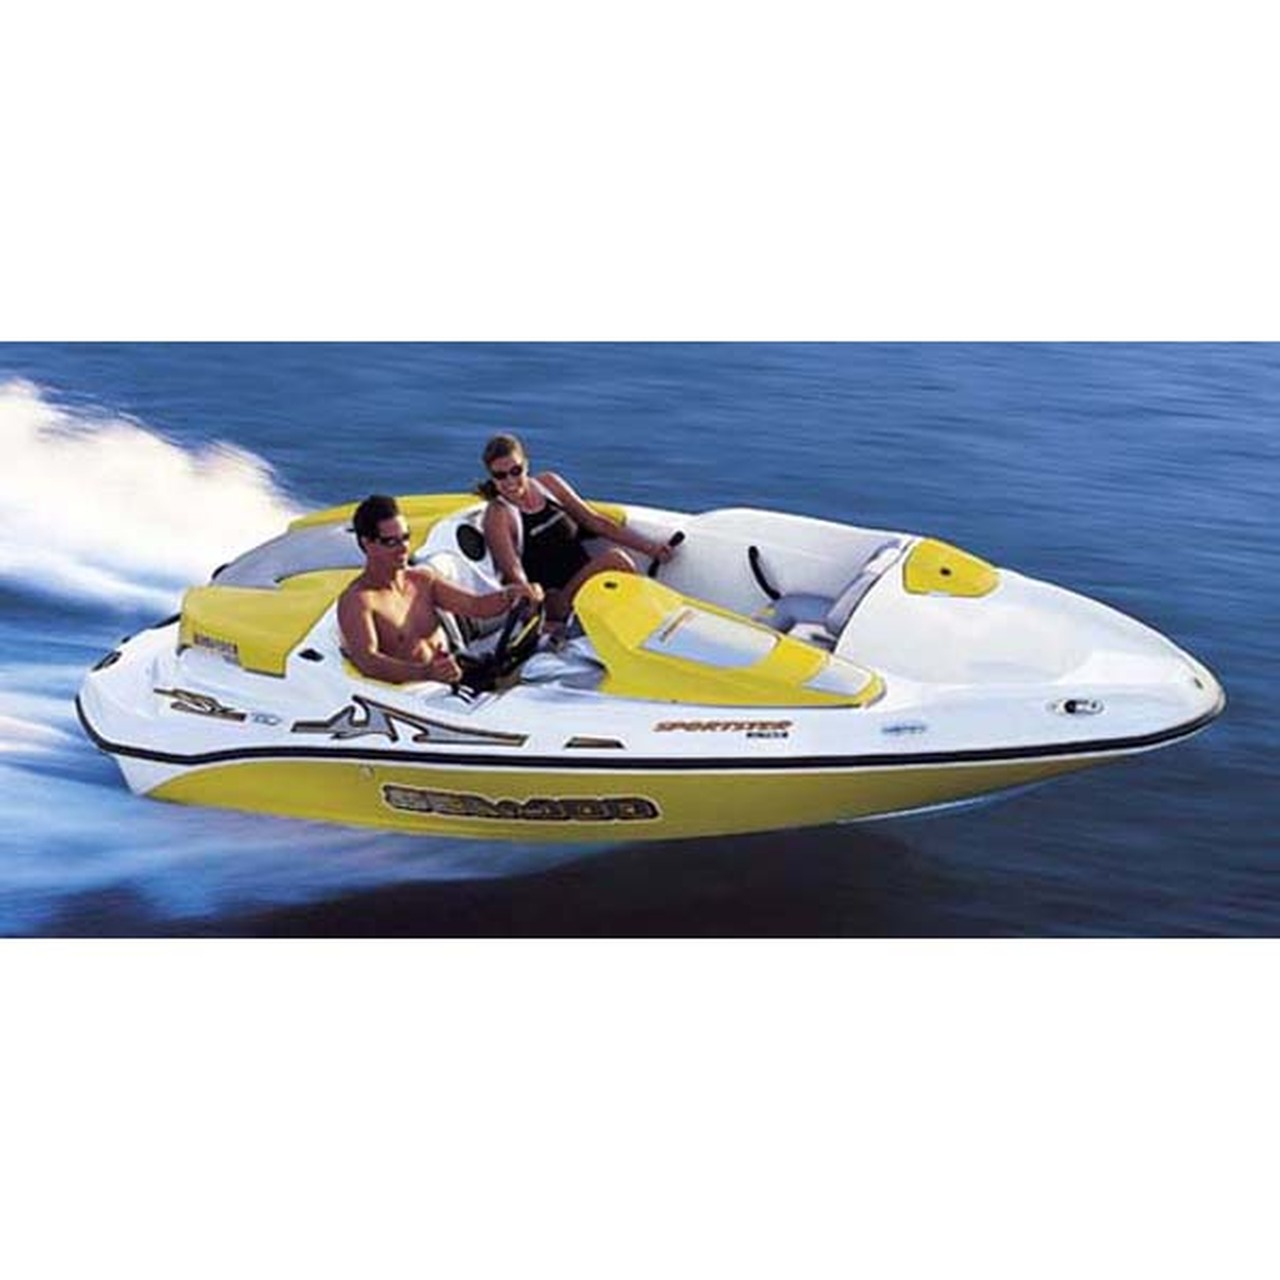 TOWABLE BOAT COVER FOR SEA DOO Sportster 1800 2000